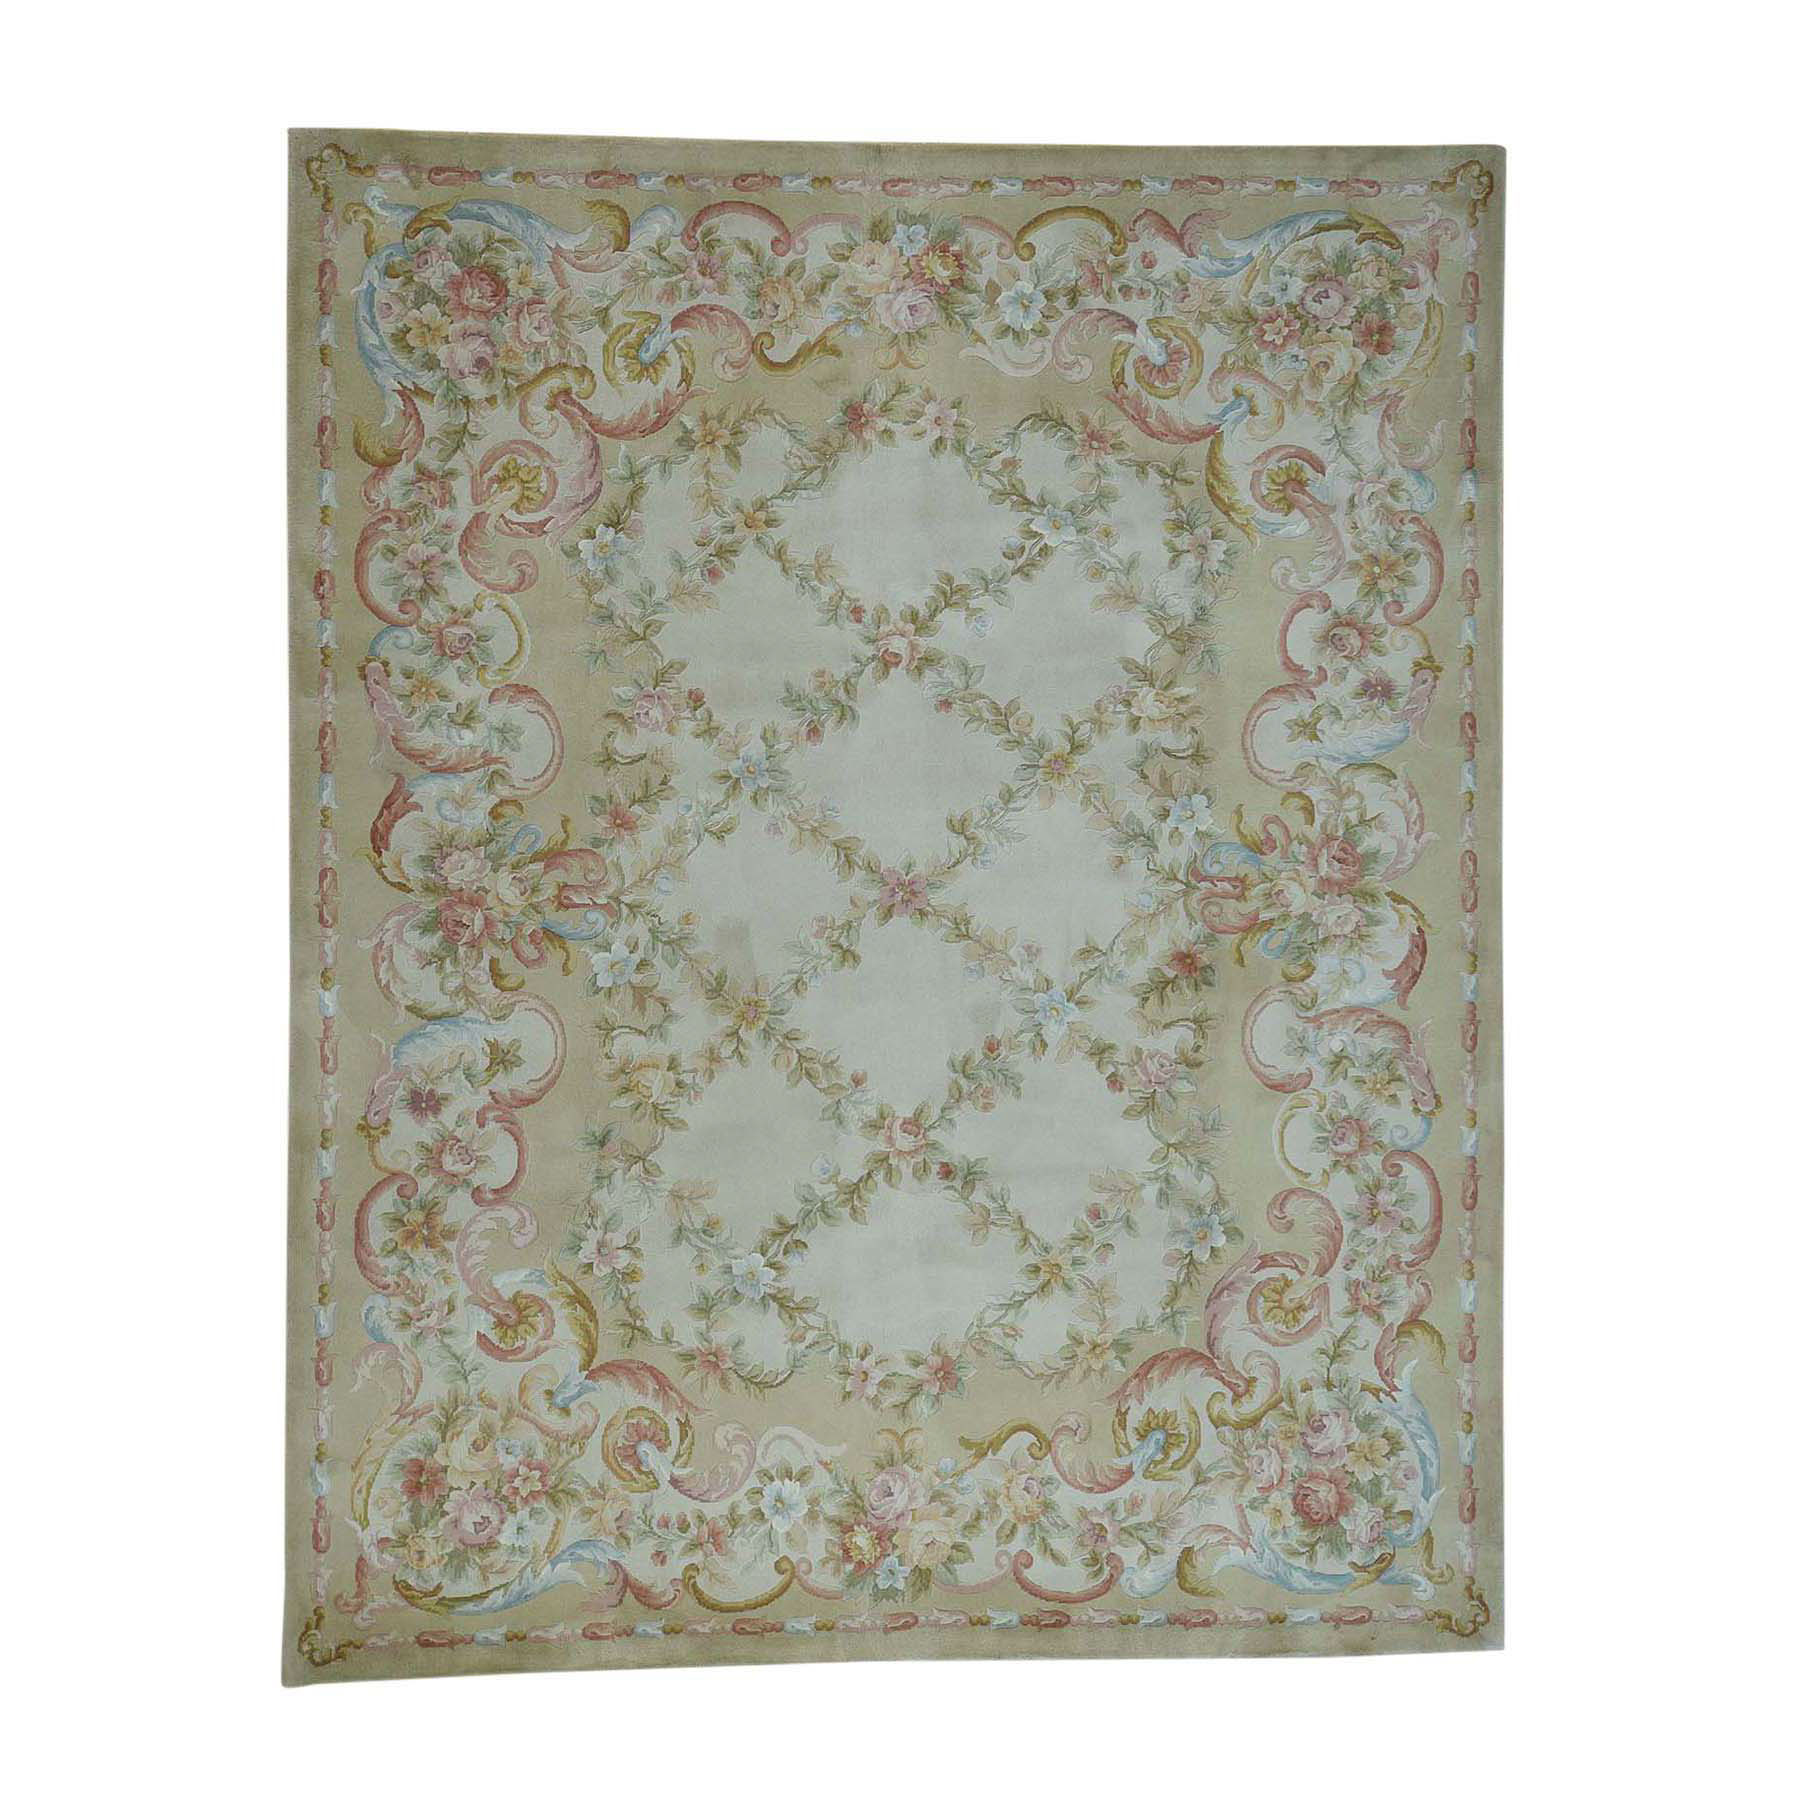 8'X10' Savonnerie Floral Trellis Design Thick And Plush Hand-Knotted Oriental Rug moadc6c7